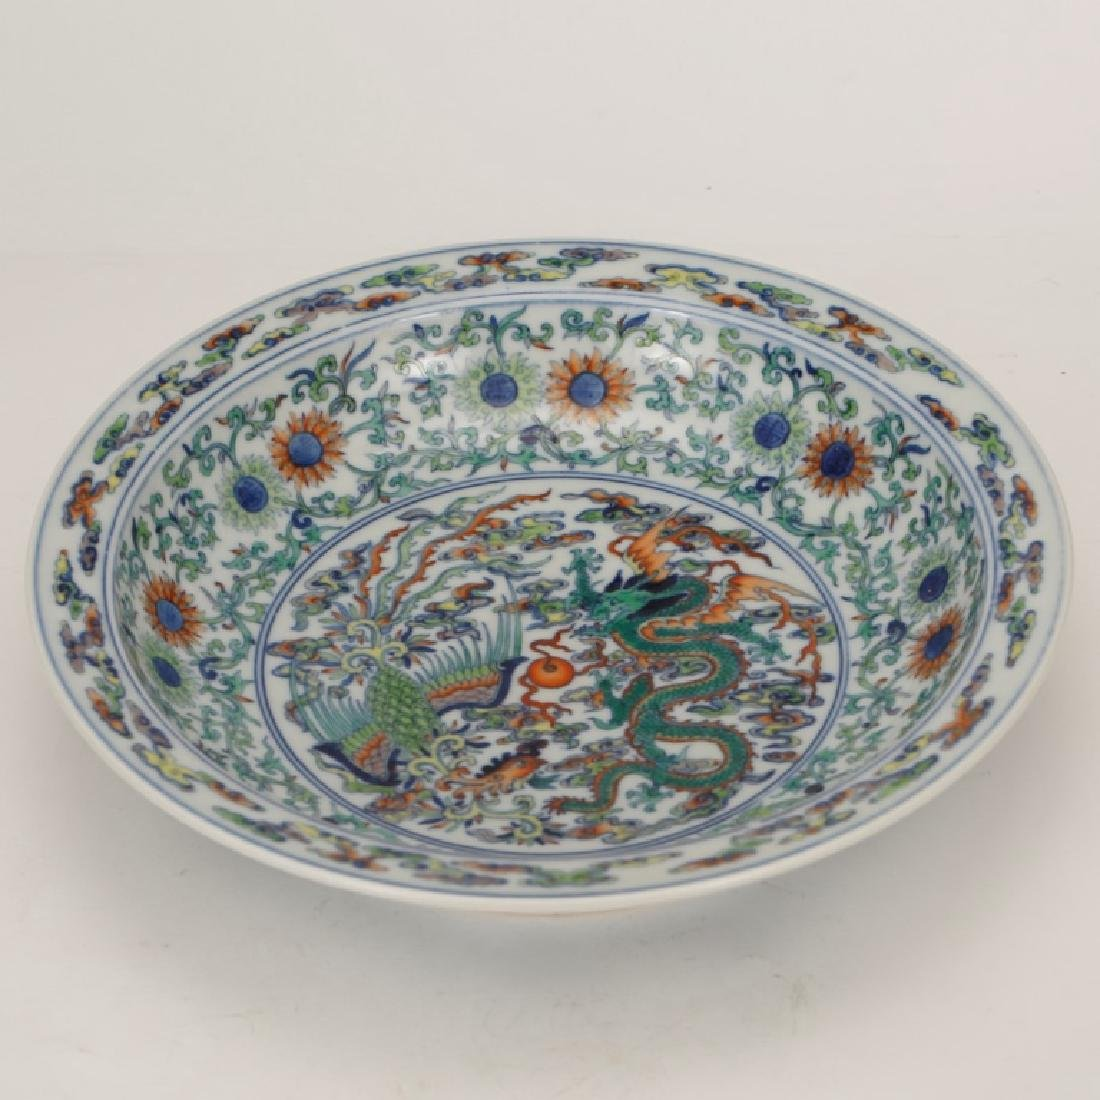 Chinese Qing Dynasty Wucai Porcelain plate